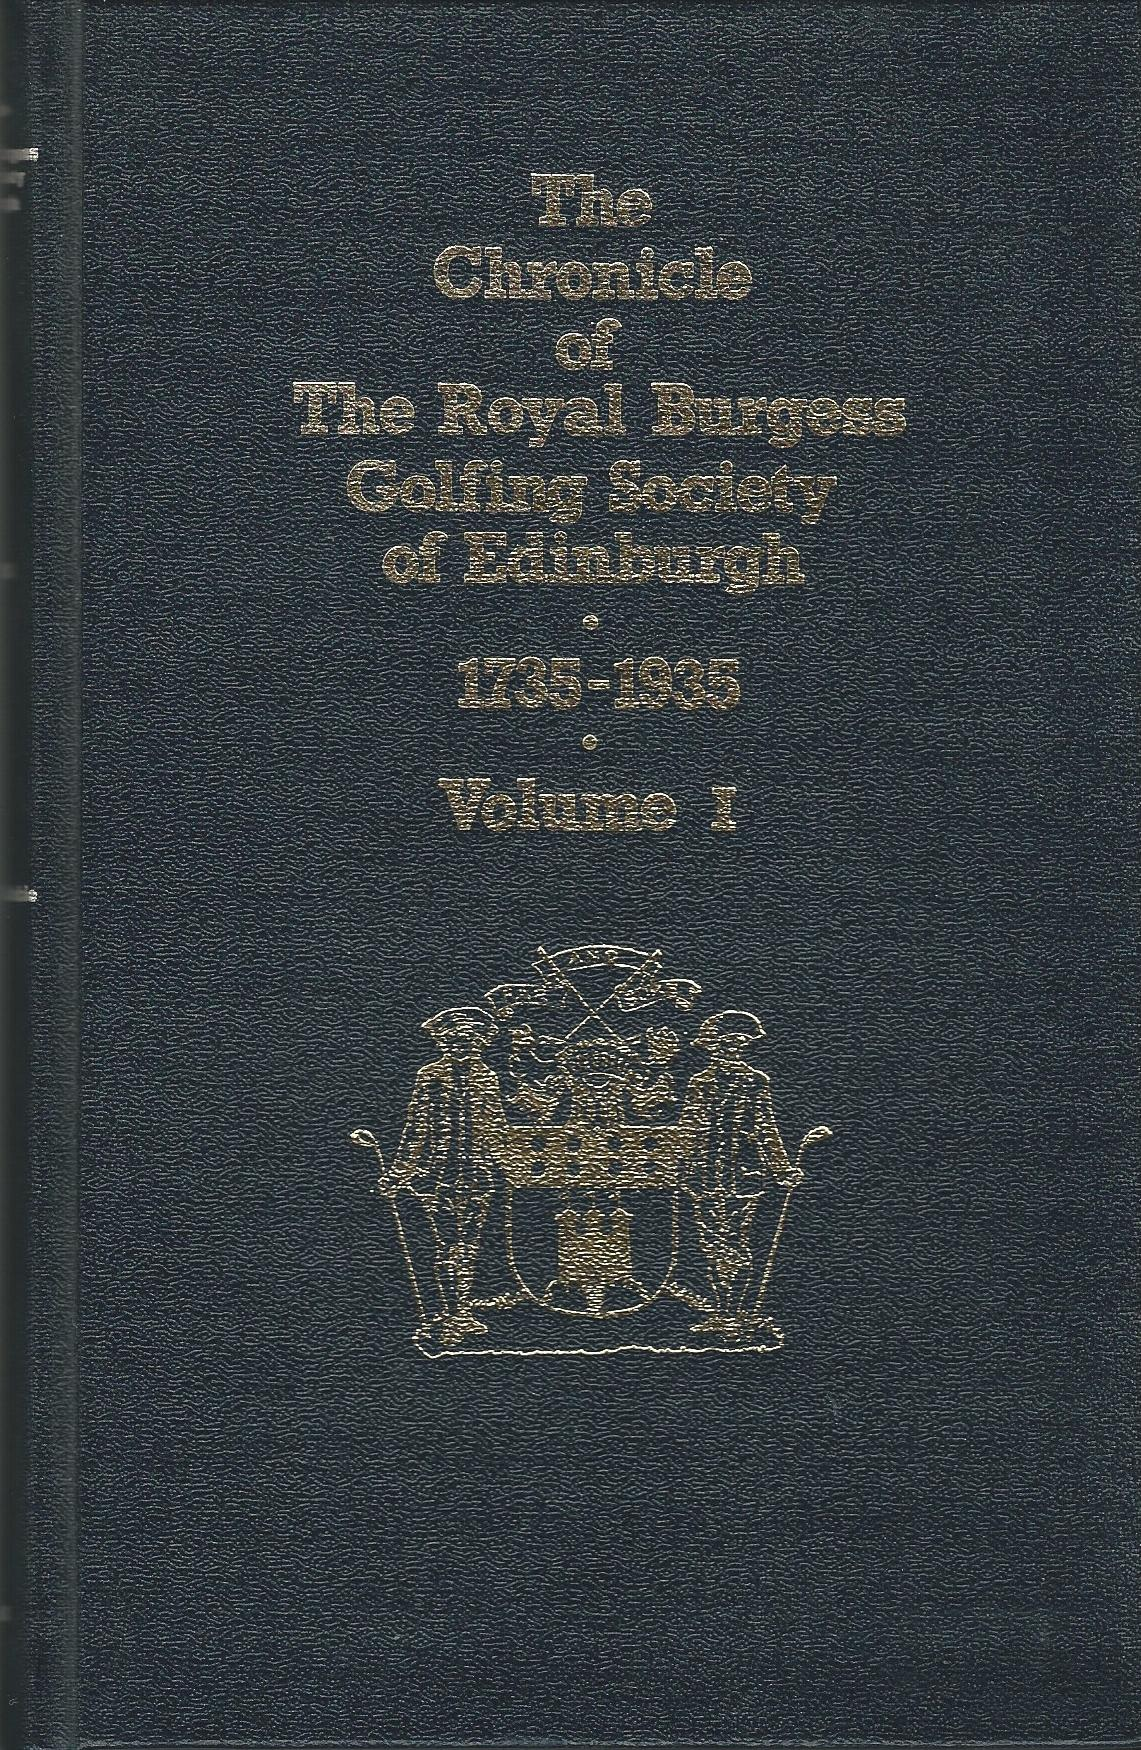 Image for The Chronicle of the Royal Burgess Golfing Society of Edinburgh- 1735-1935, Volume I